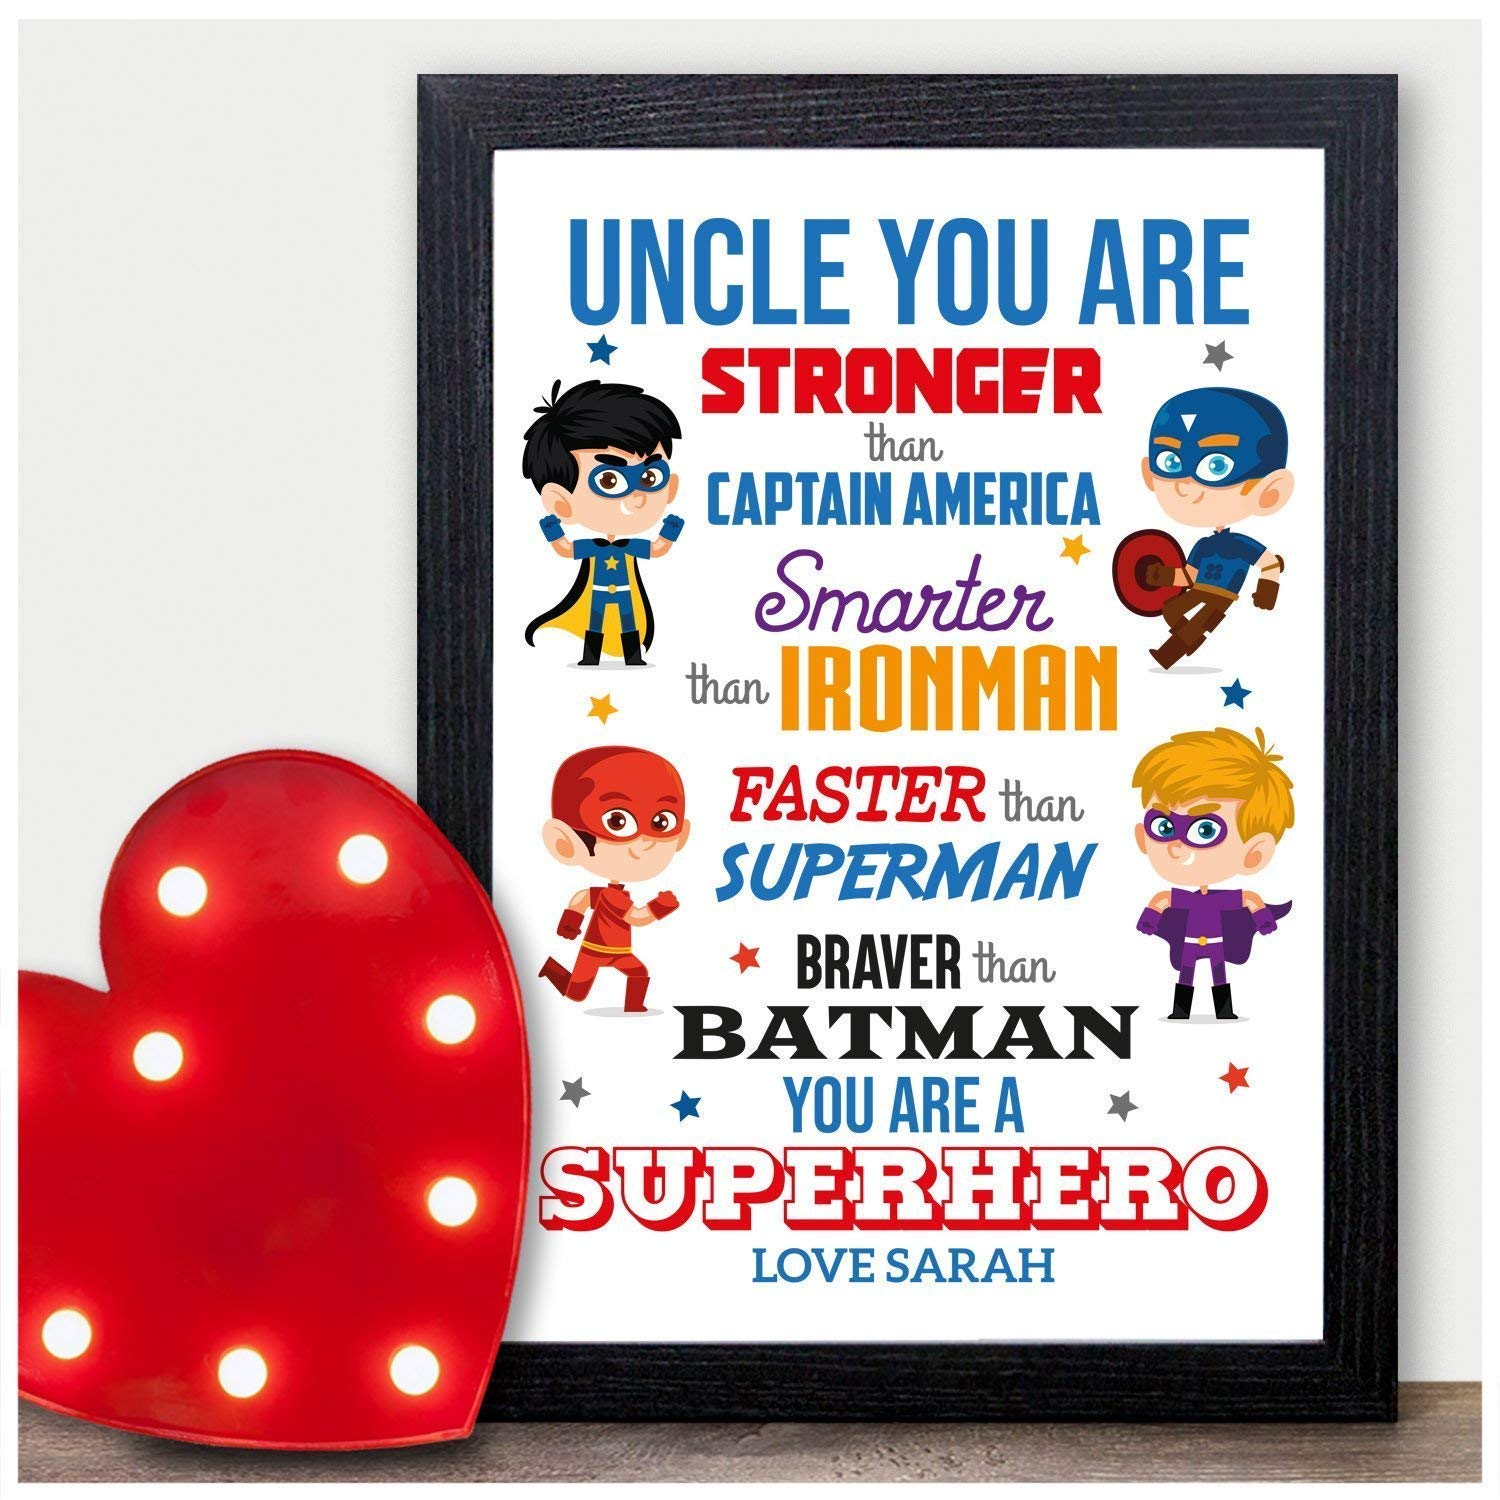 Christmas Presents For Brother.Personalised Superhero Keepsake Christmas Gifts Uncle Brother Xmas Presents Him Personalised With Any Name And Any Recipient Black Or White Framed